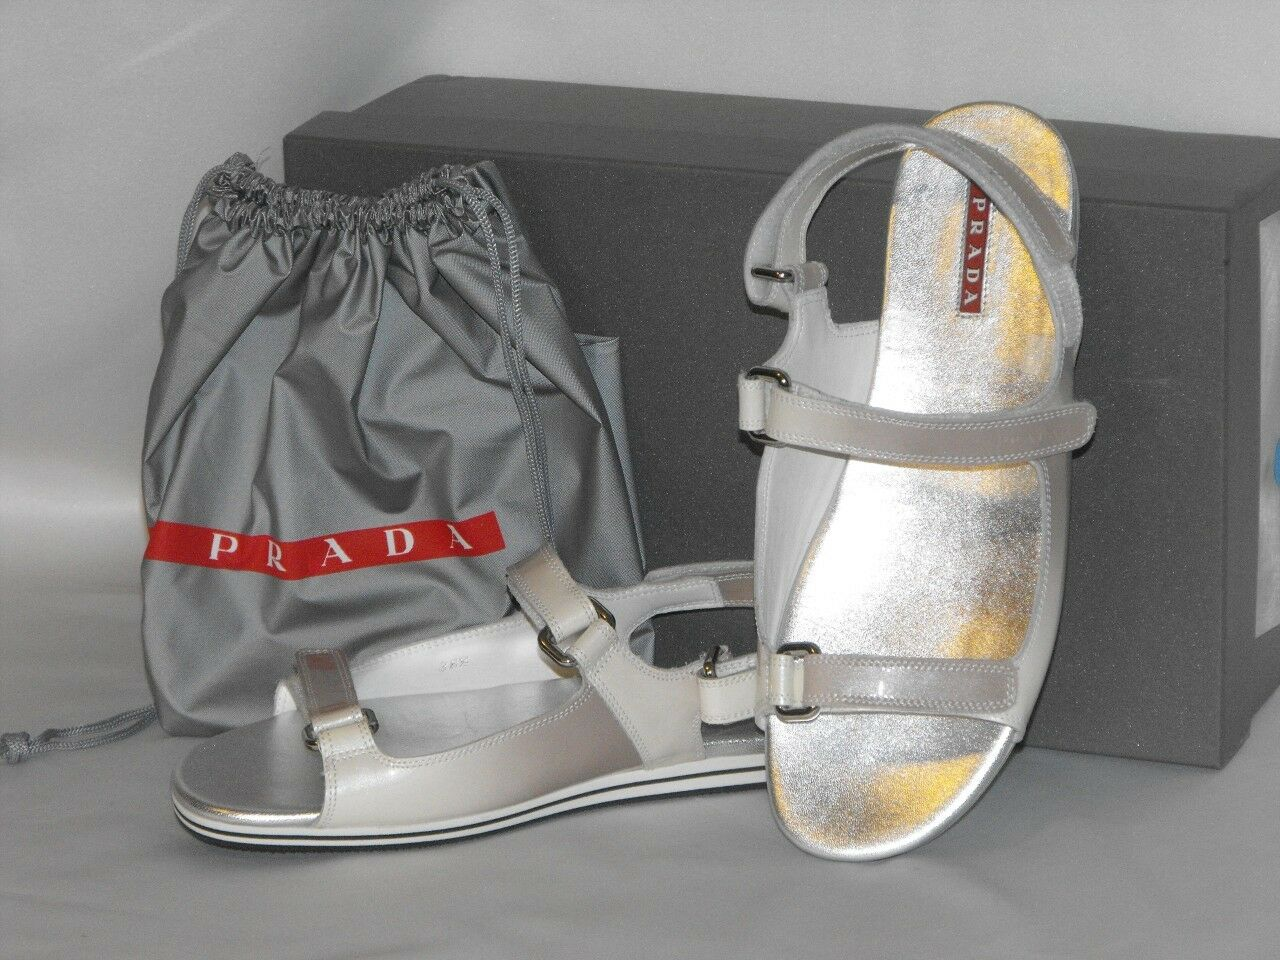 PRADA PATENT OMBRE FUME LEATHER FLATS TWO TONES GLADIATOR LOGO SANDALS 36.5